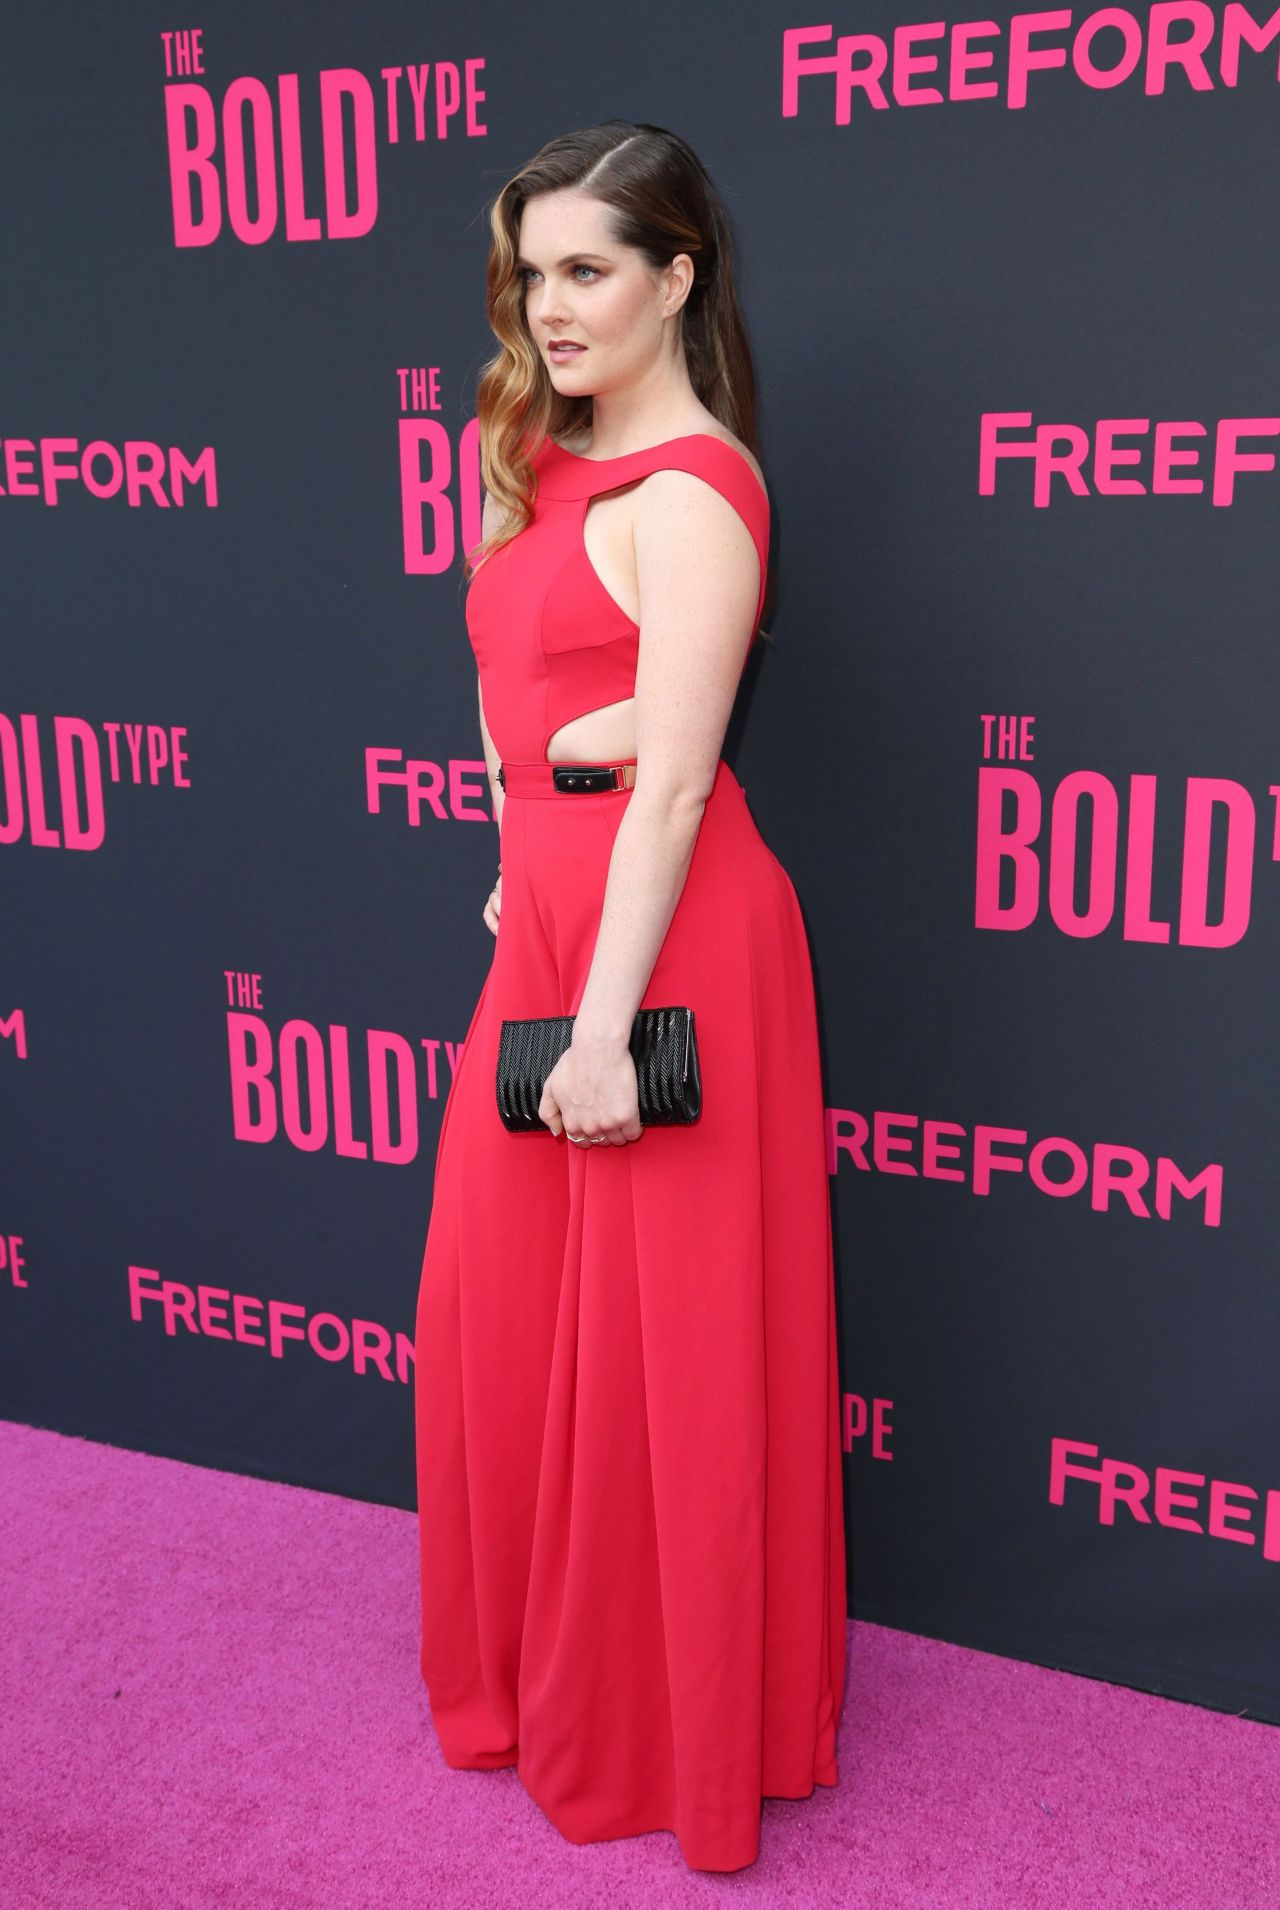 meghann fahy the bold type tv show premiere in nyc 06 22 2017. Black Bedroom Furniture Sets. Home Design Ideas